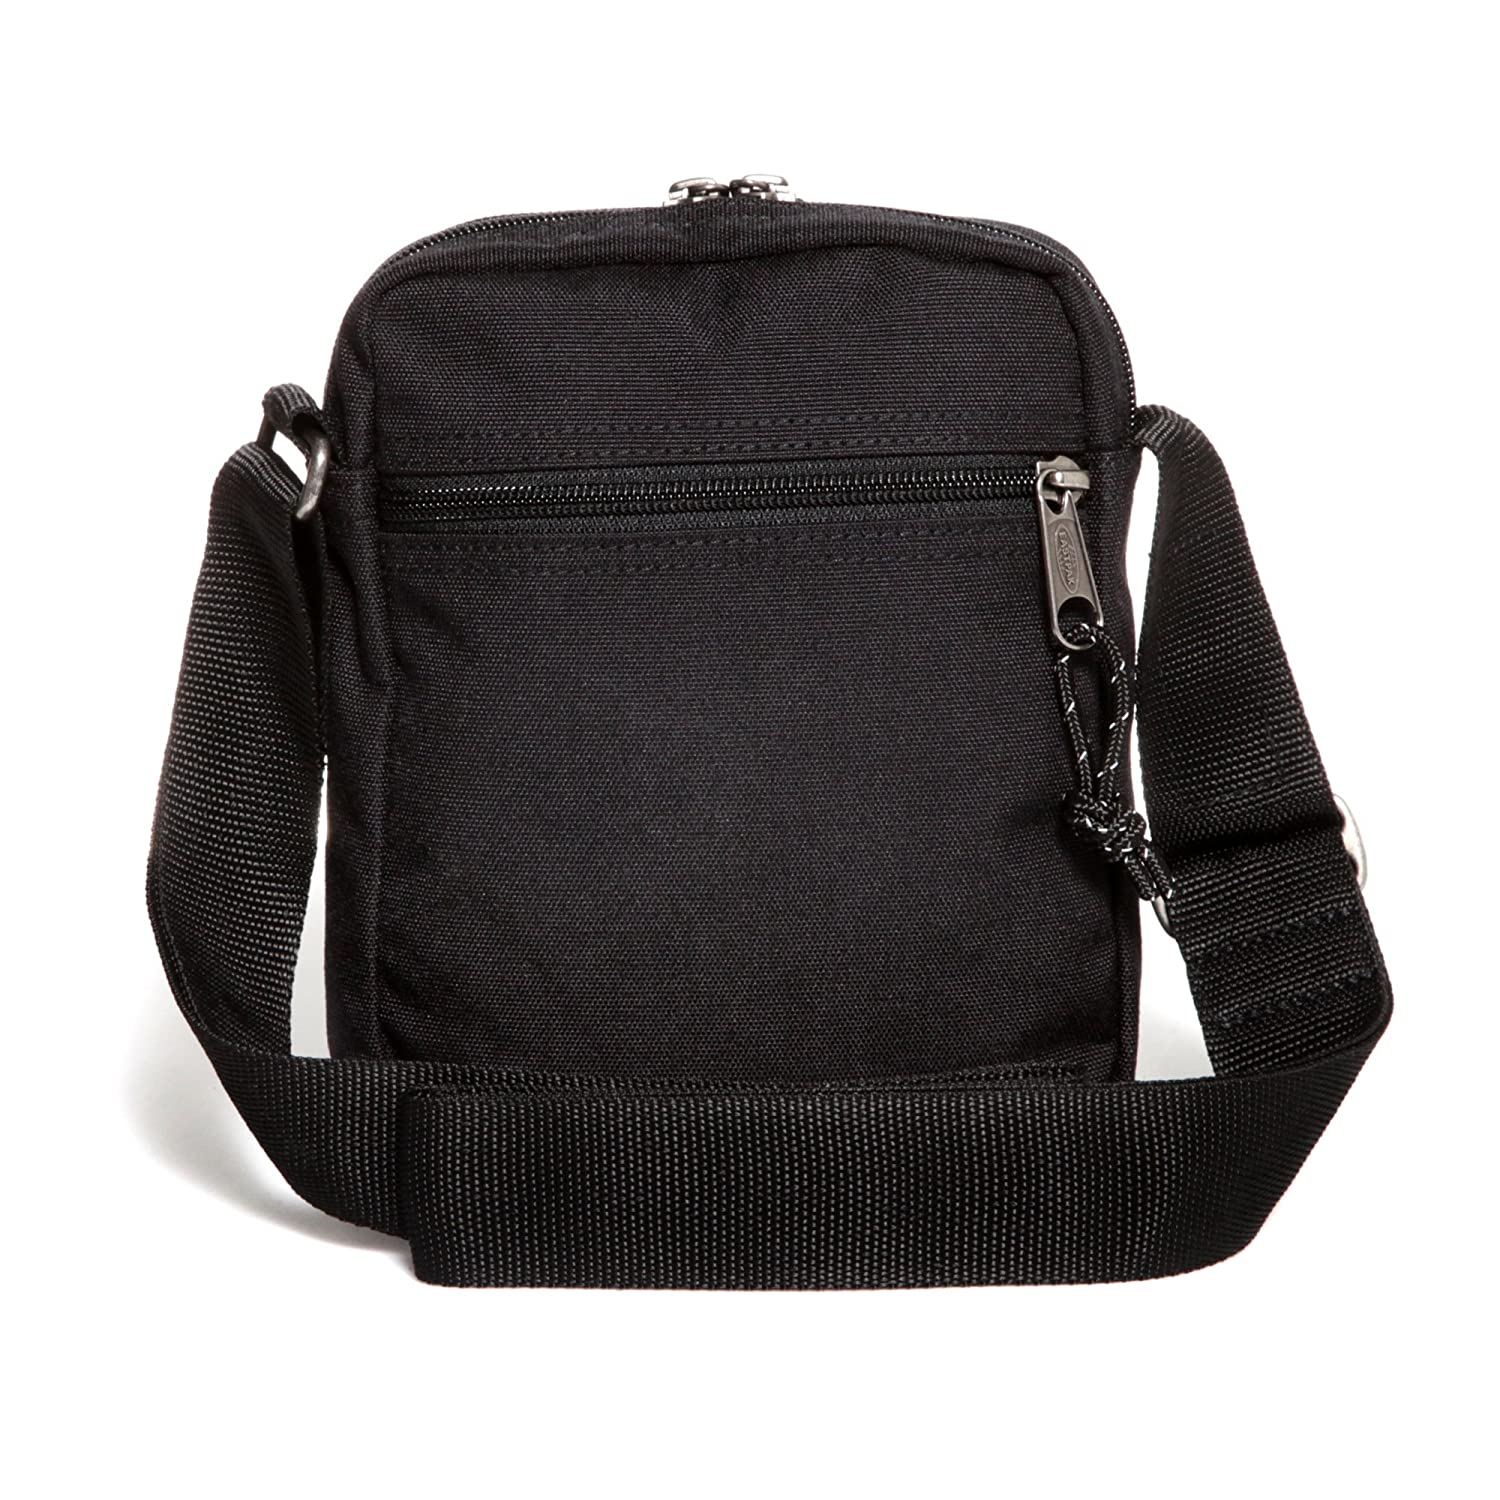 Eastpak The e Umhän asche 21 cm Schwarz Eastpak Amazon